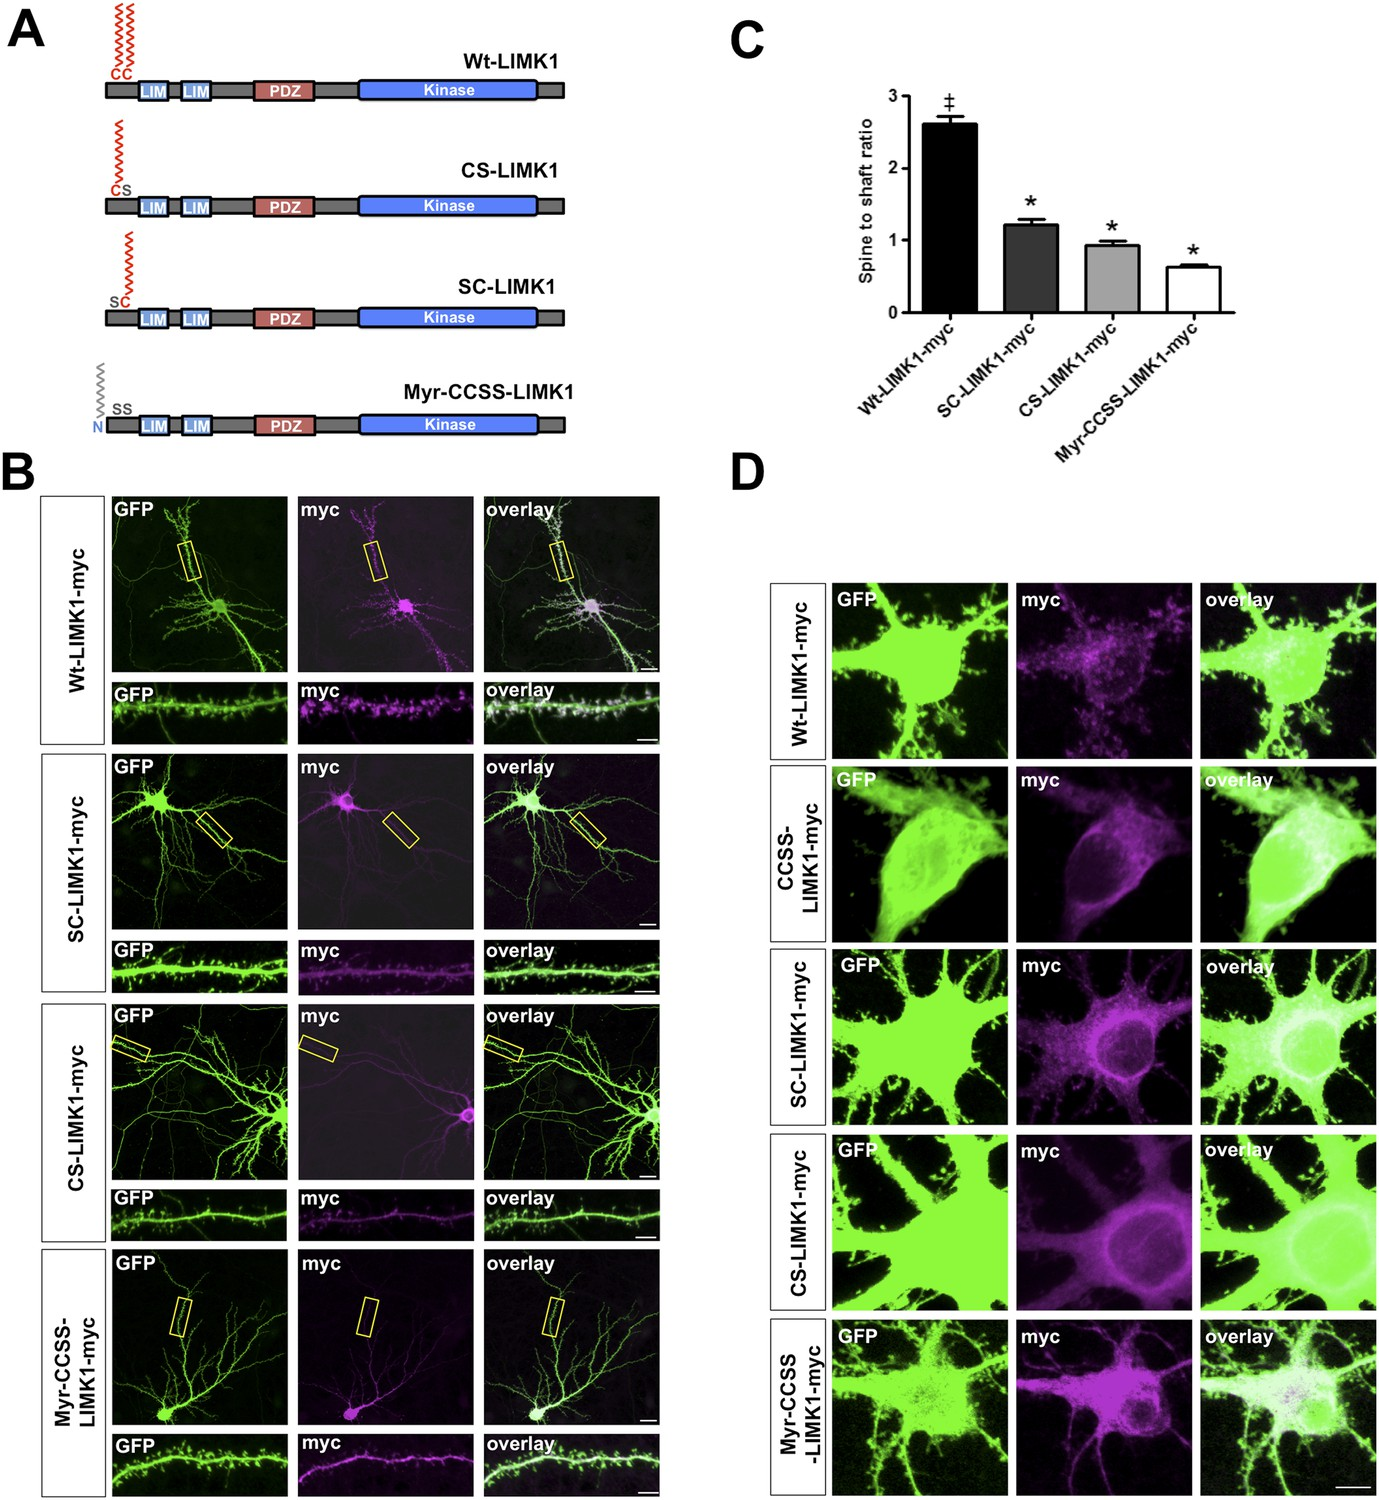 Dual palmitoylation is necessary for LIMK1 spine targeting.